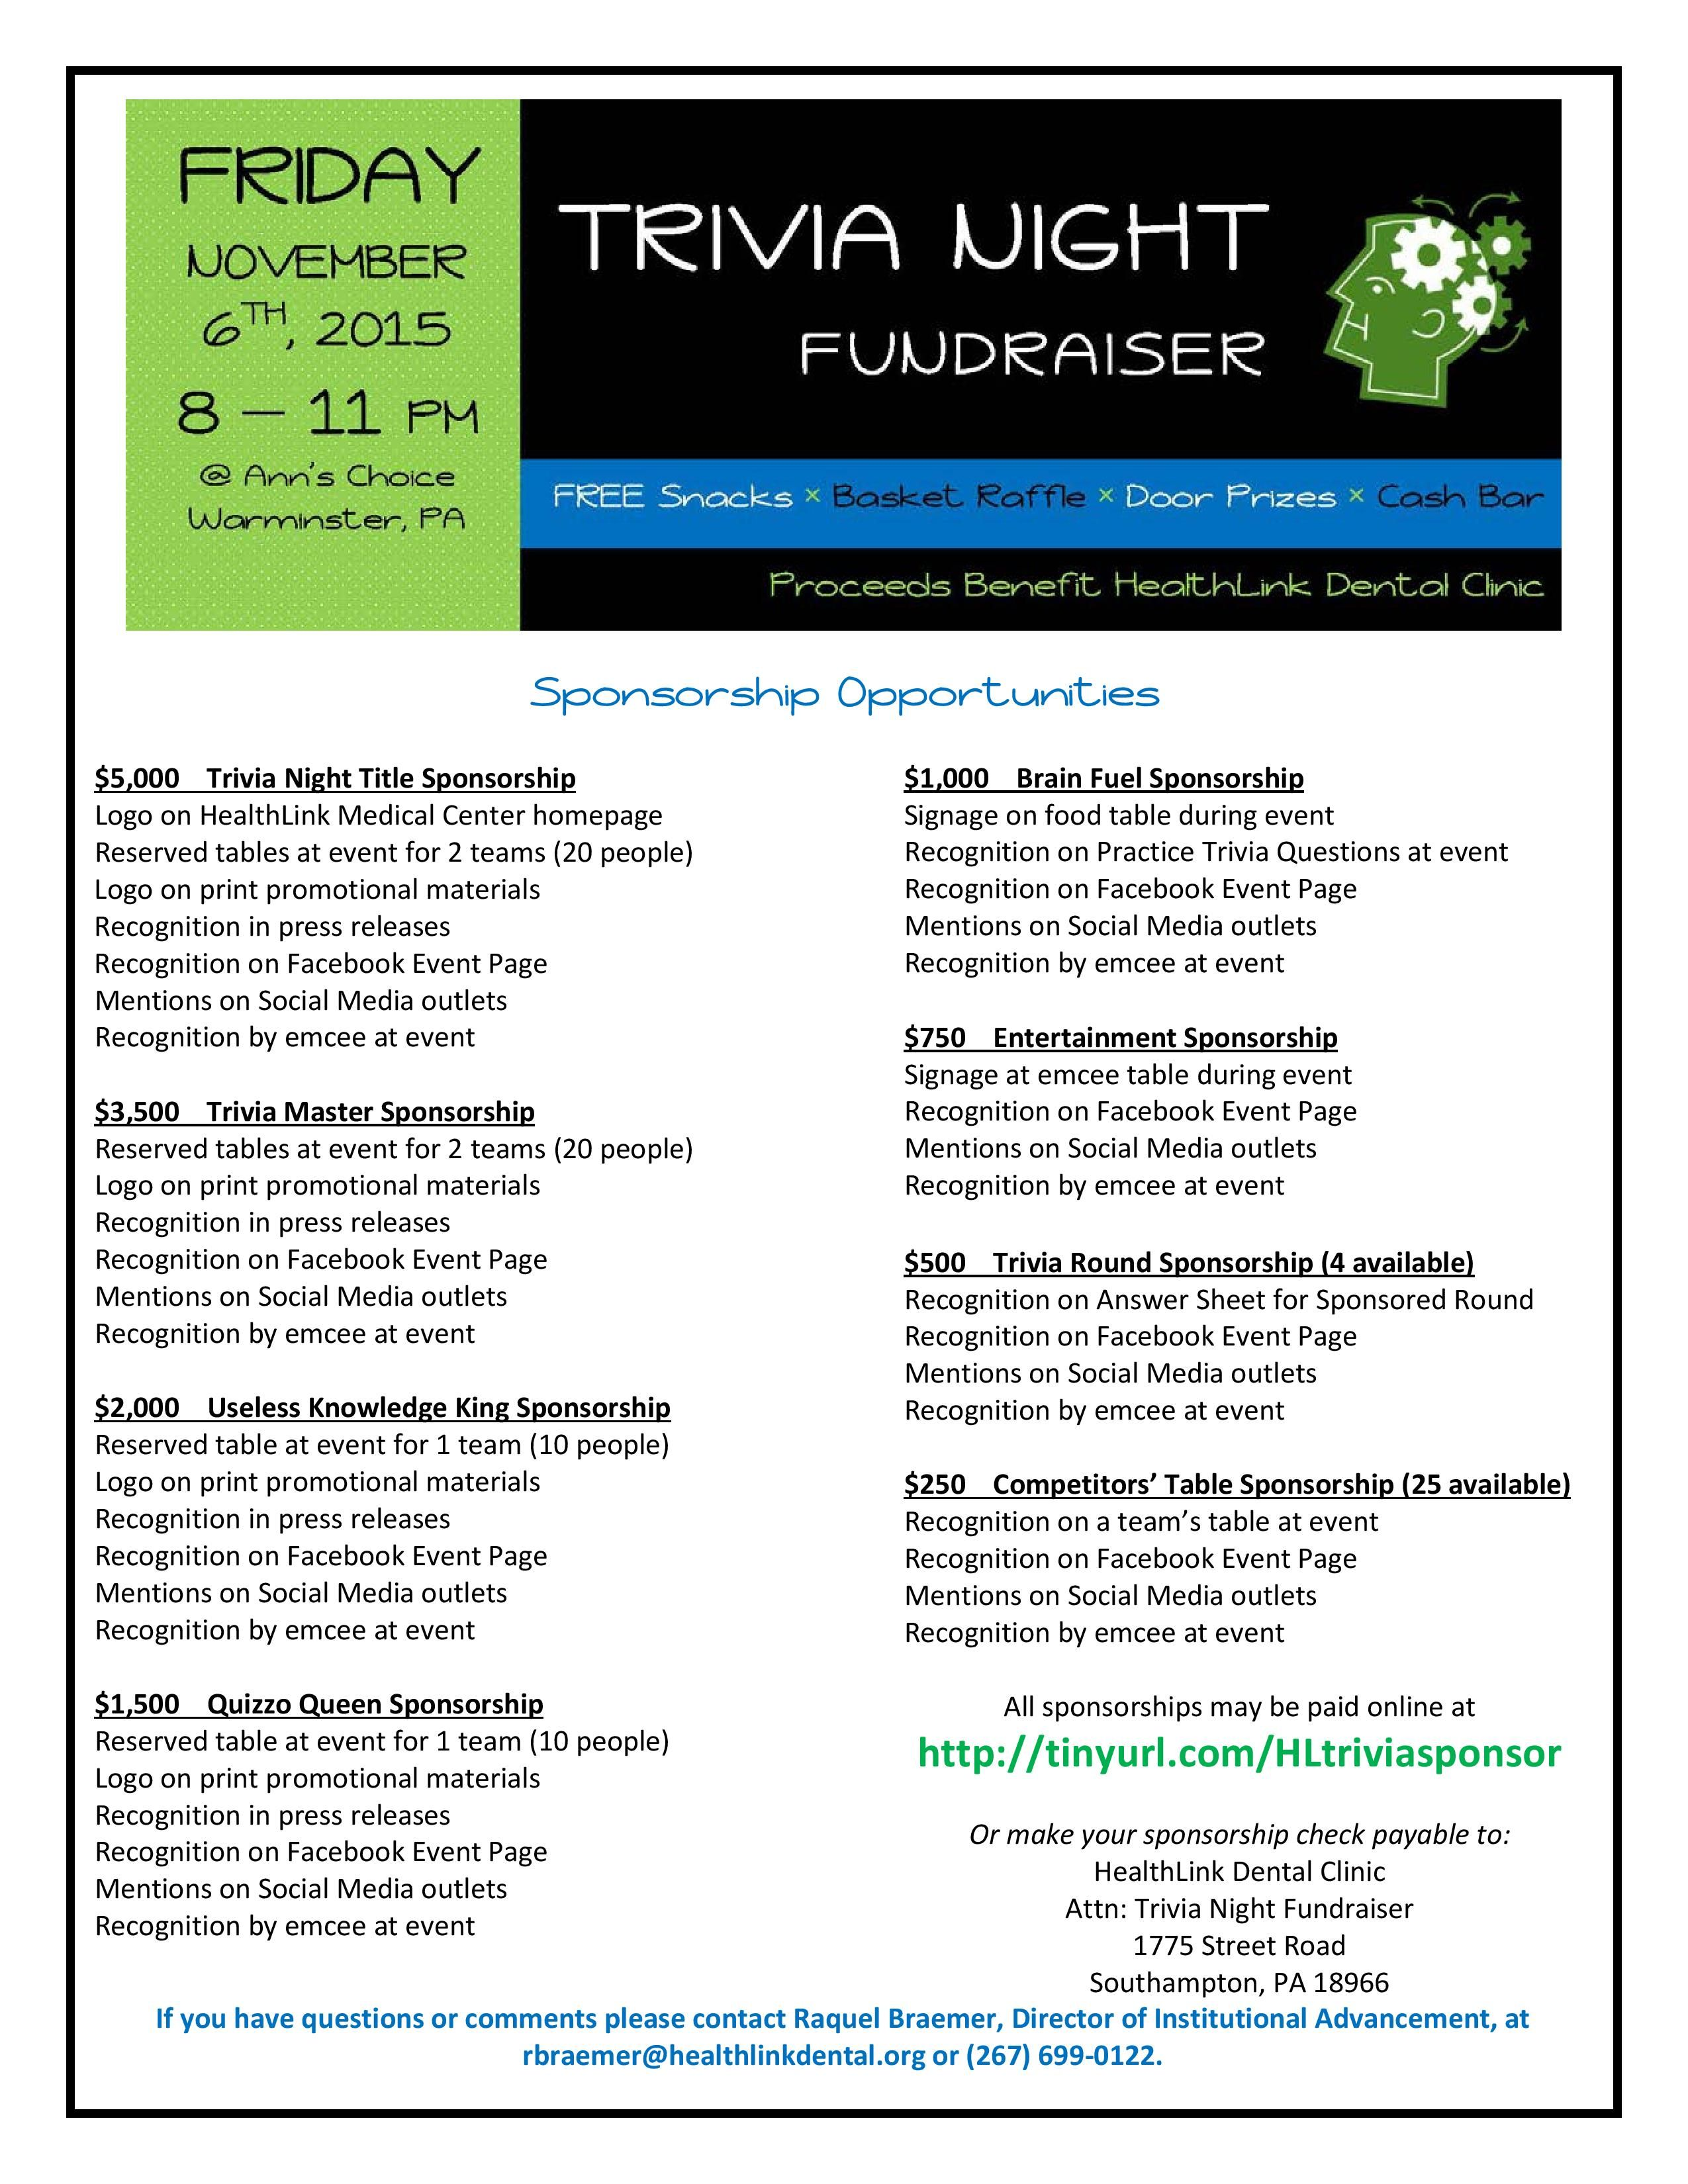 Sponsorship opportunities are available to local businesses to support trivia night fundraiser 11 6